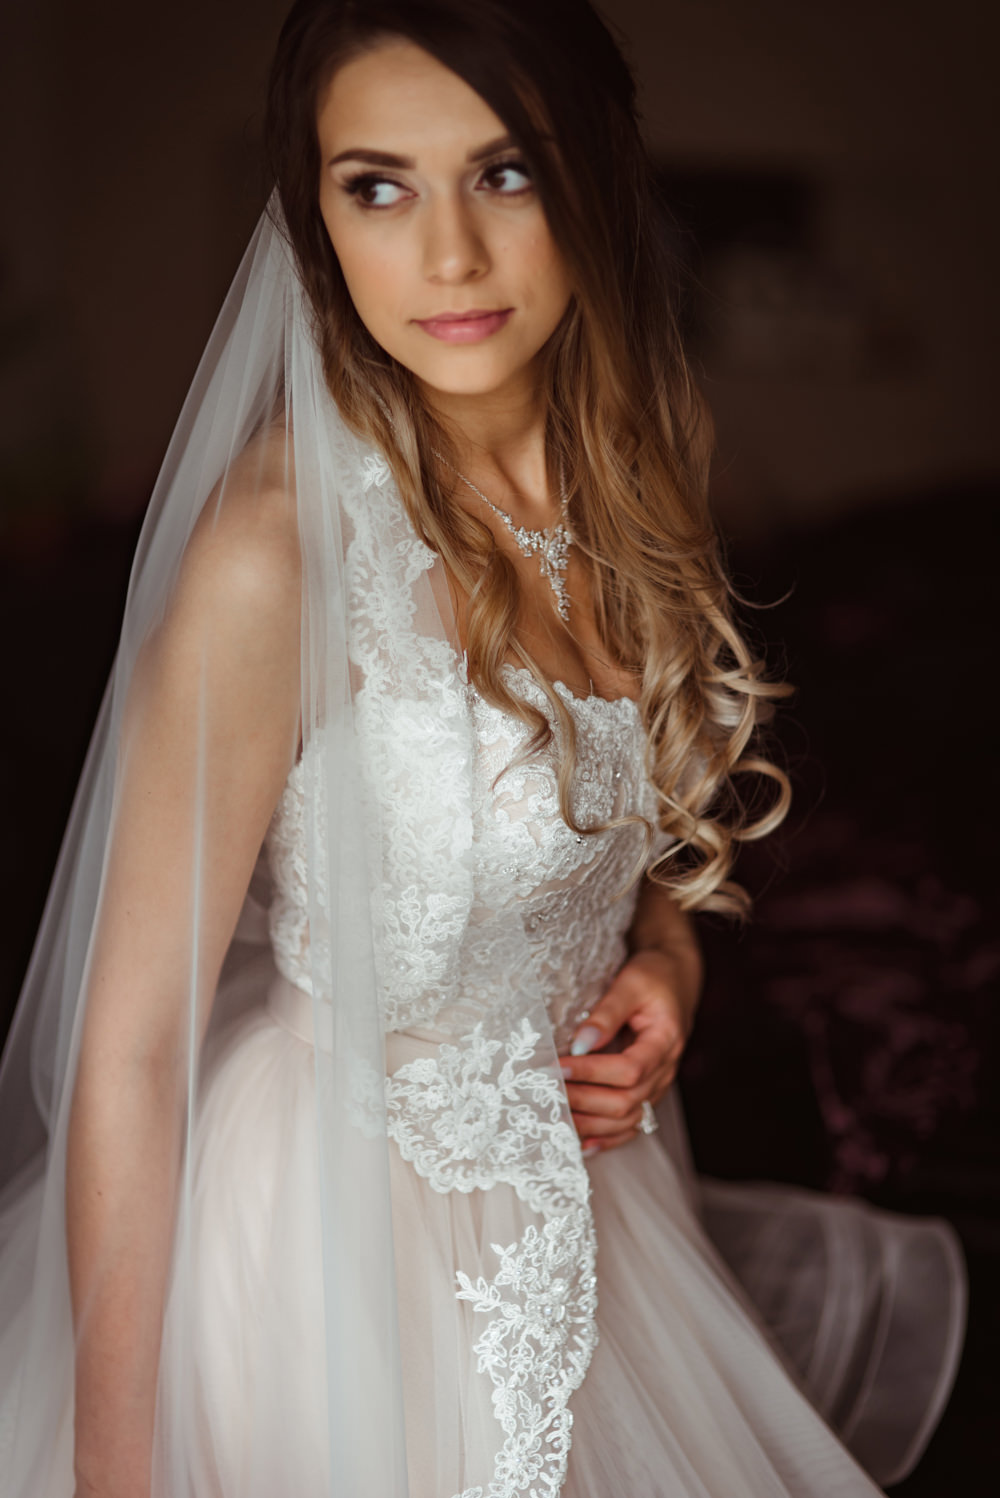 anne-priscilla-wedding-dress.jpg